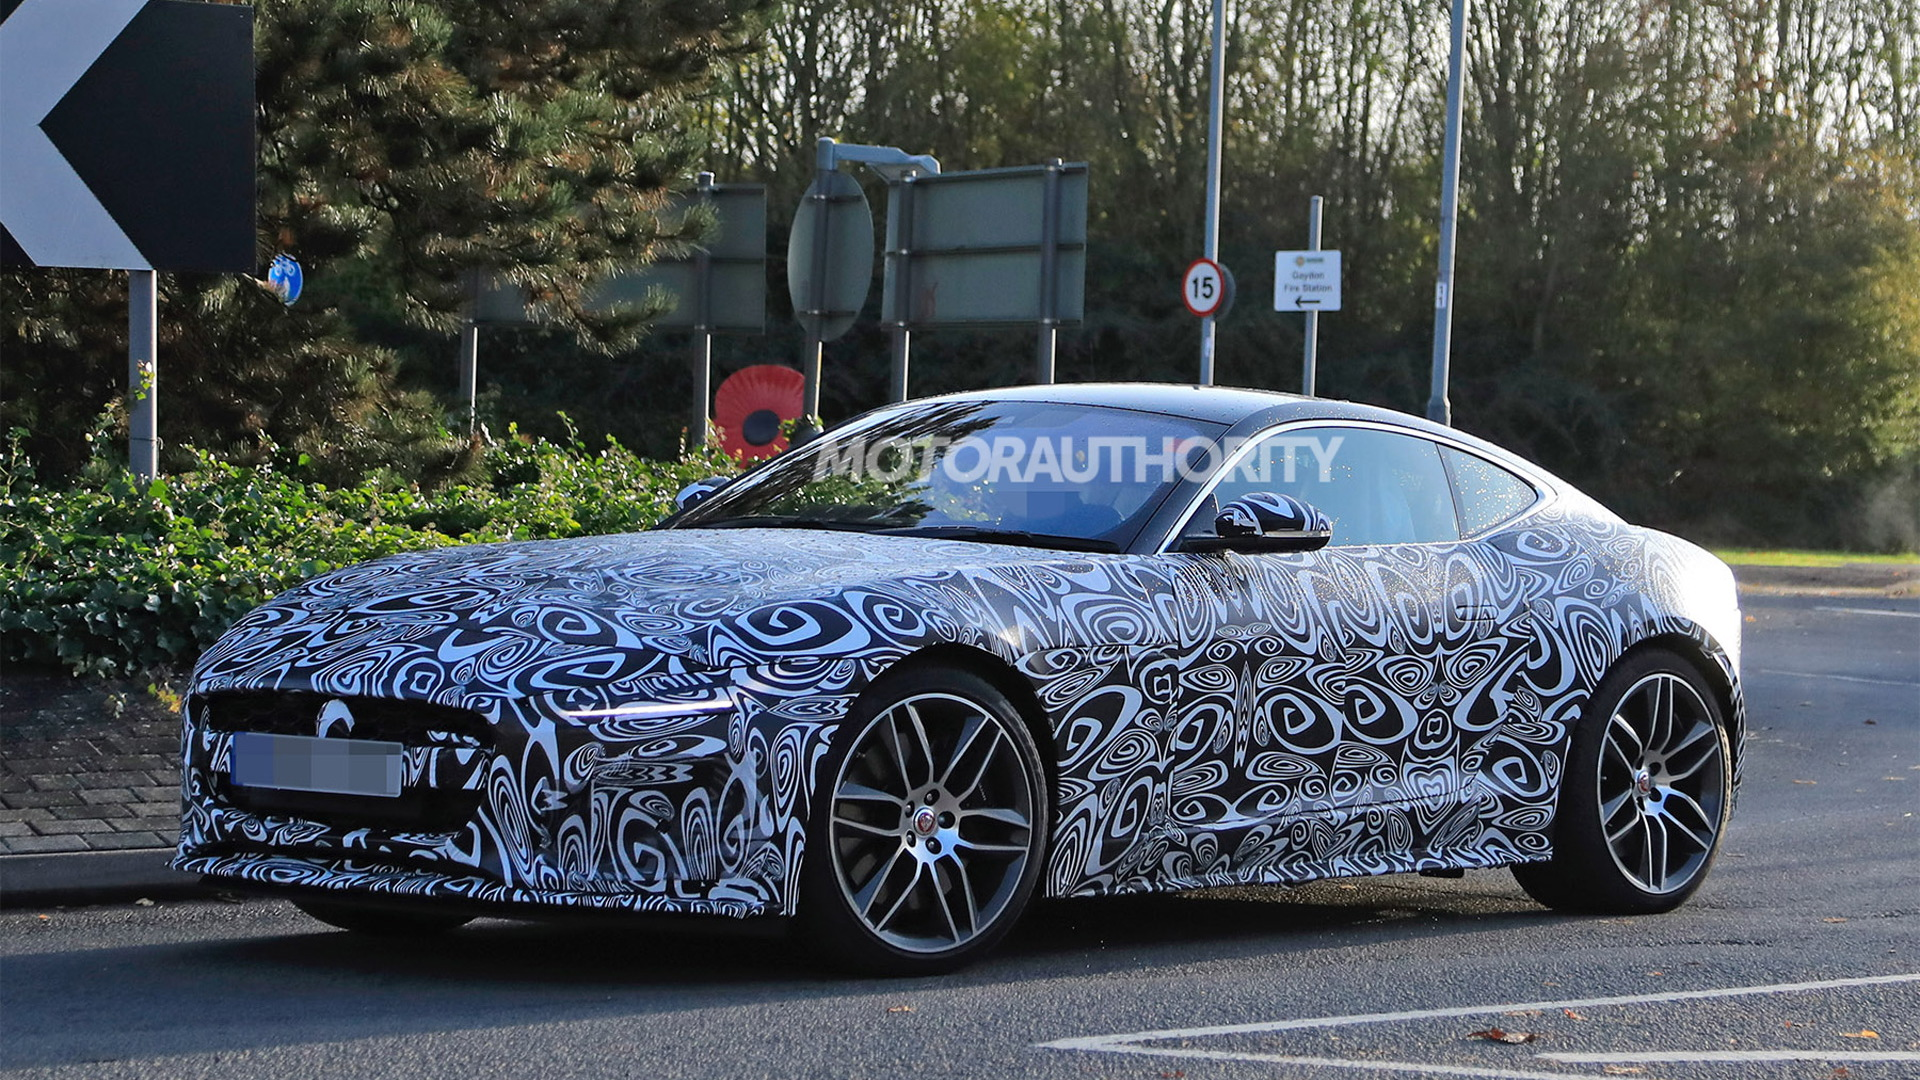 2021 Jaguar F-Type facelift spy shots - Photo credit: S. Baldauf/SB-Medien